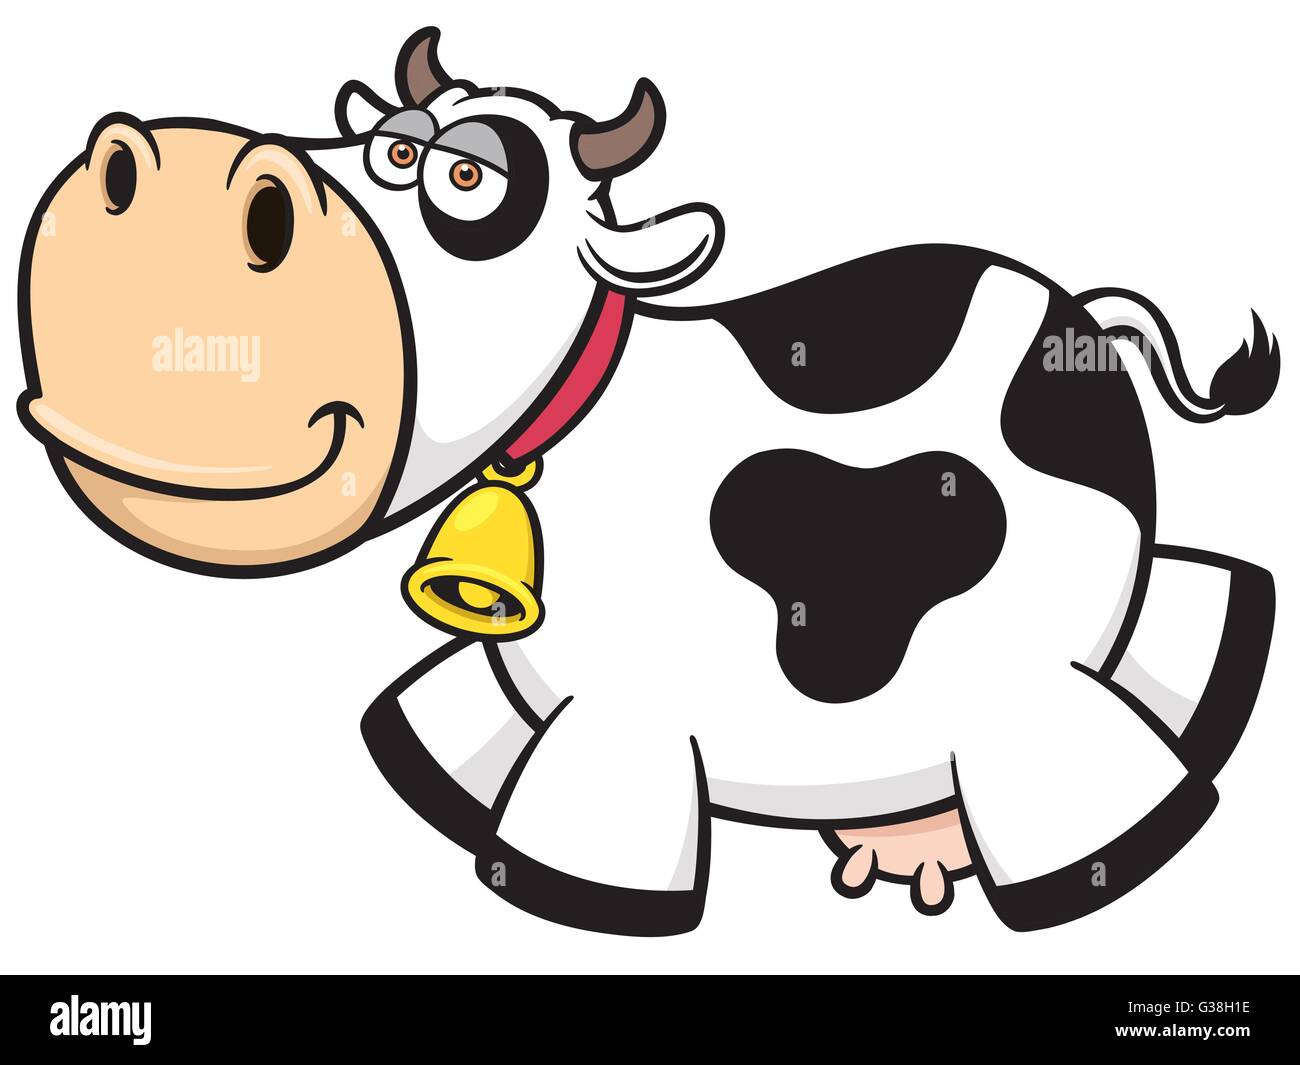 Cartoon Cow Stock Photos & Cartoon Cow Stock Images